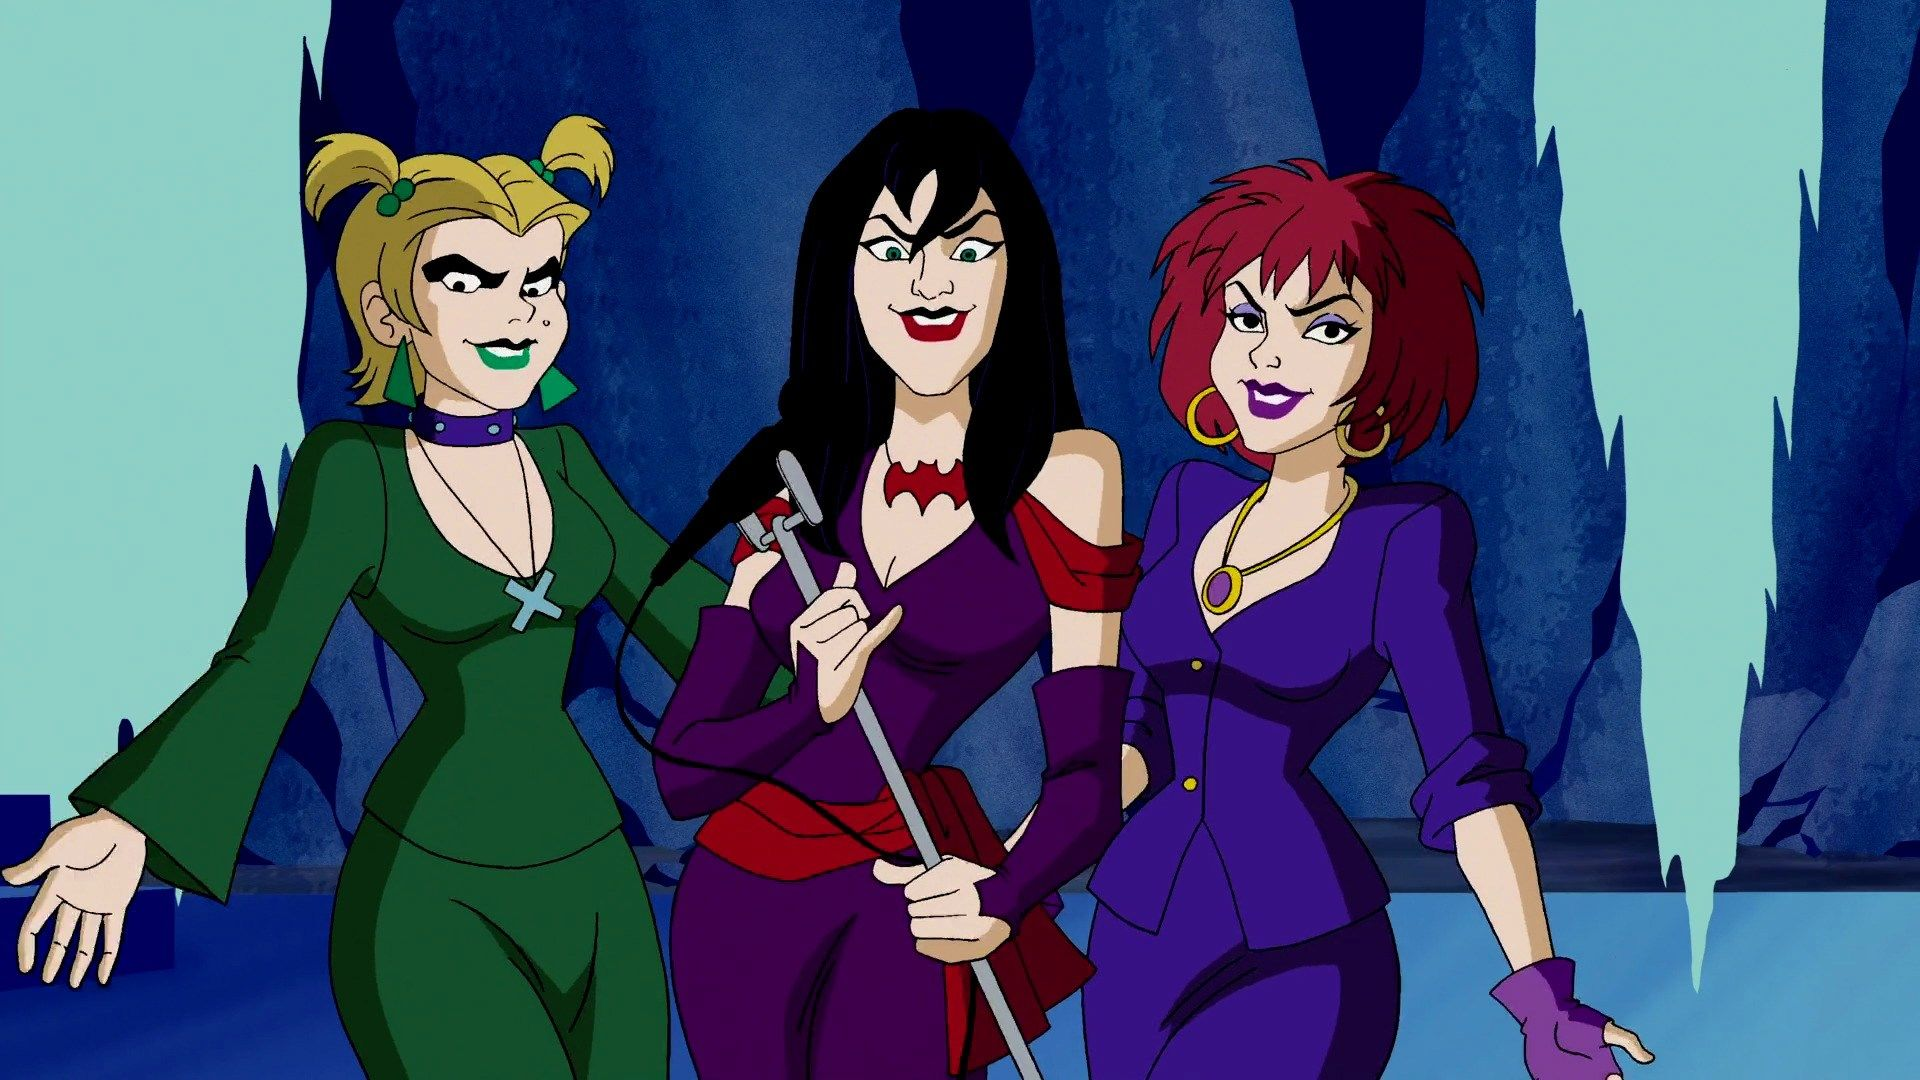 The hex girls standing together.